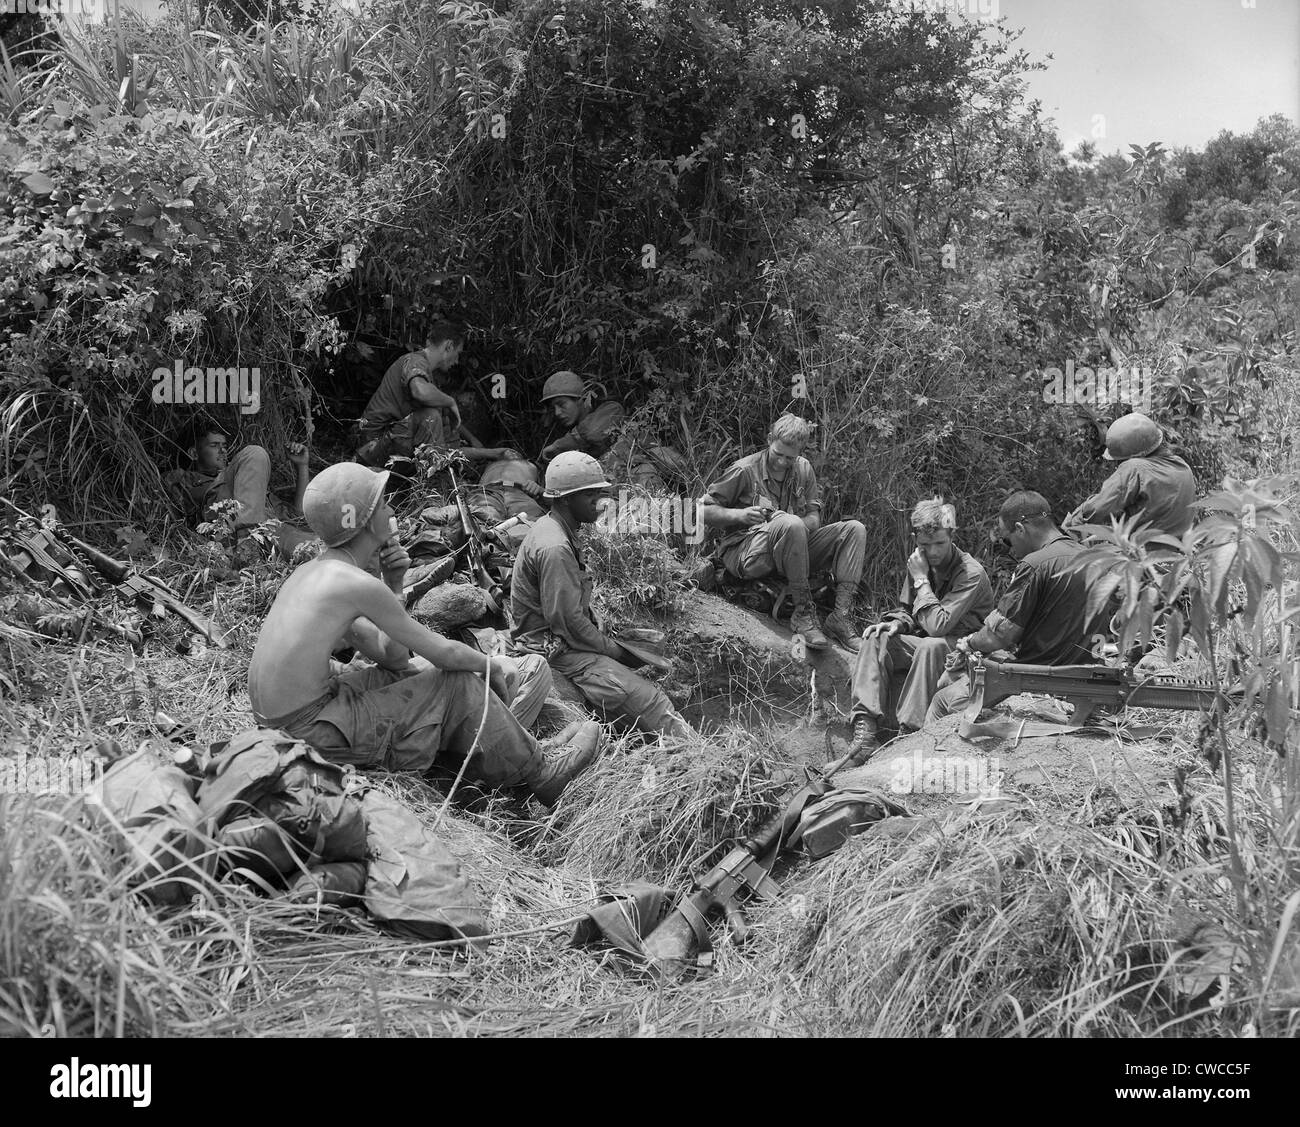 Vietnam war soldiers of the 101st airborne division take a break vietnam war soldiers of the 101st airborne division take a break from jungle fighting east of tam ky the capital city of sciox Choice Image